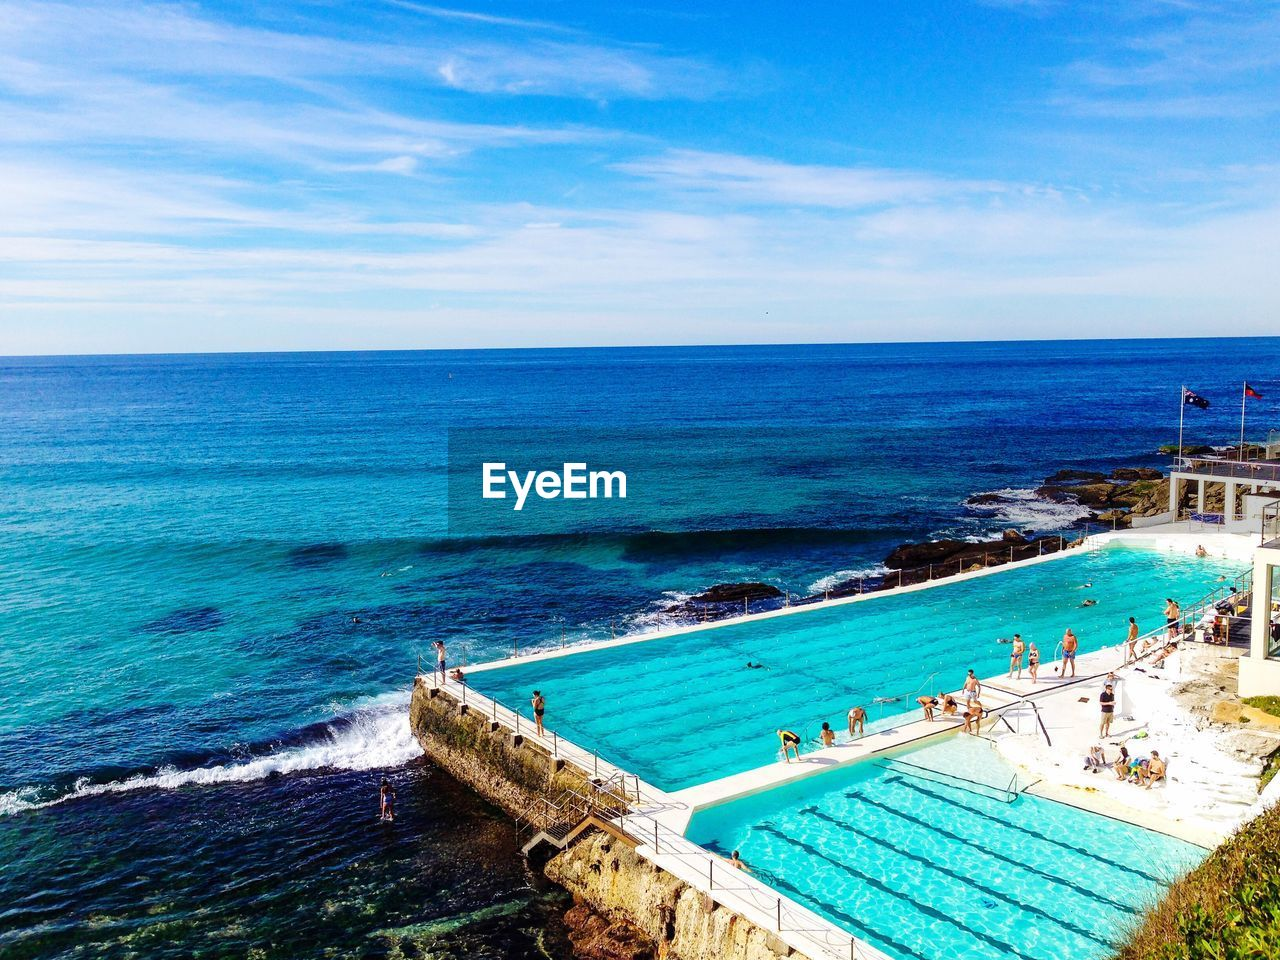 water, sea, horizon over water, horizon, sky, scenics - nature, beauty in nature, nature, blue, swimming pool, pool, day, high angle view, land, beach, group of people, cloud - sky, holiday, vacations, outdoors, turquoise colored